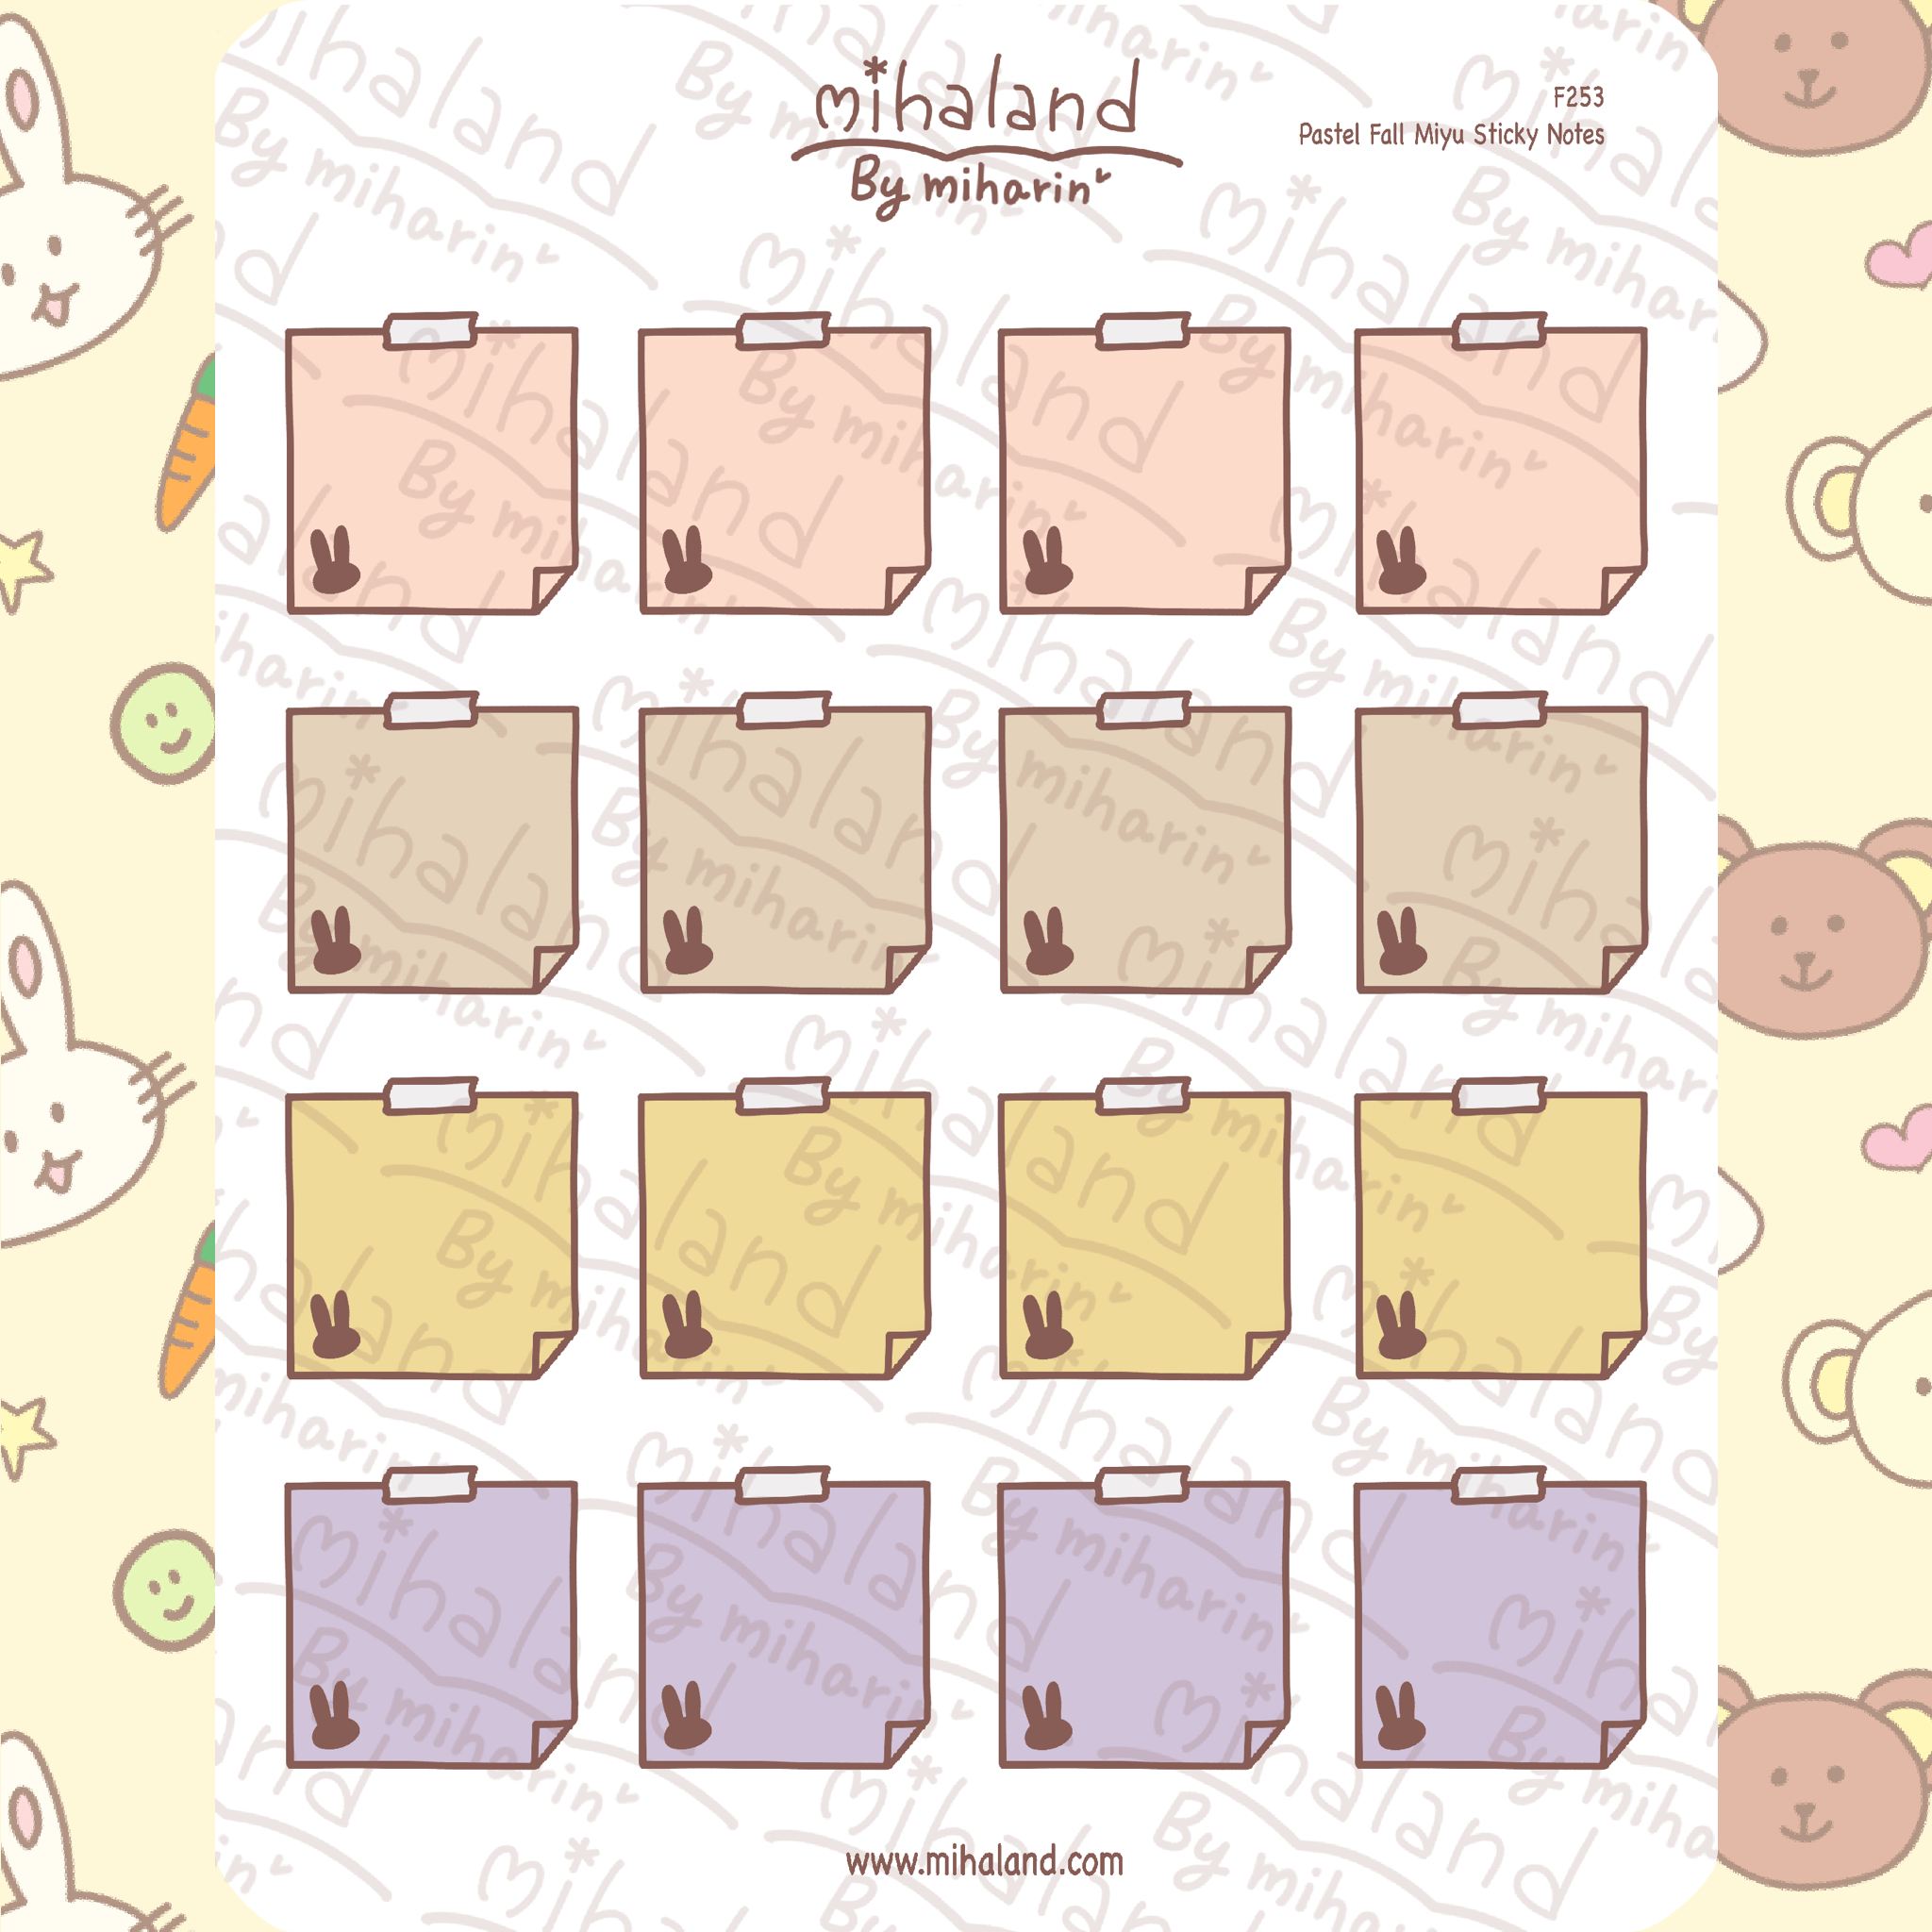 Pastel Fall Miyu Sticky Notes Planner Stickers (F253)